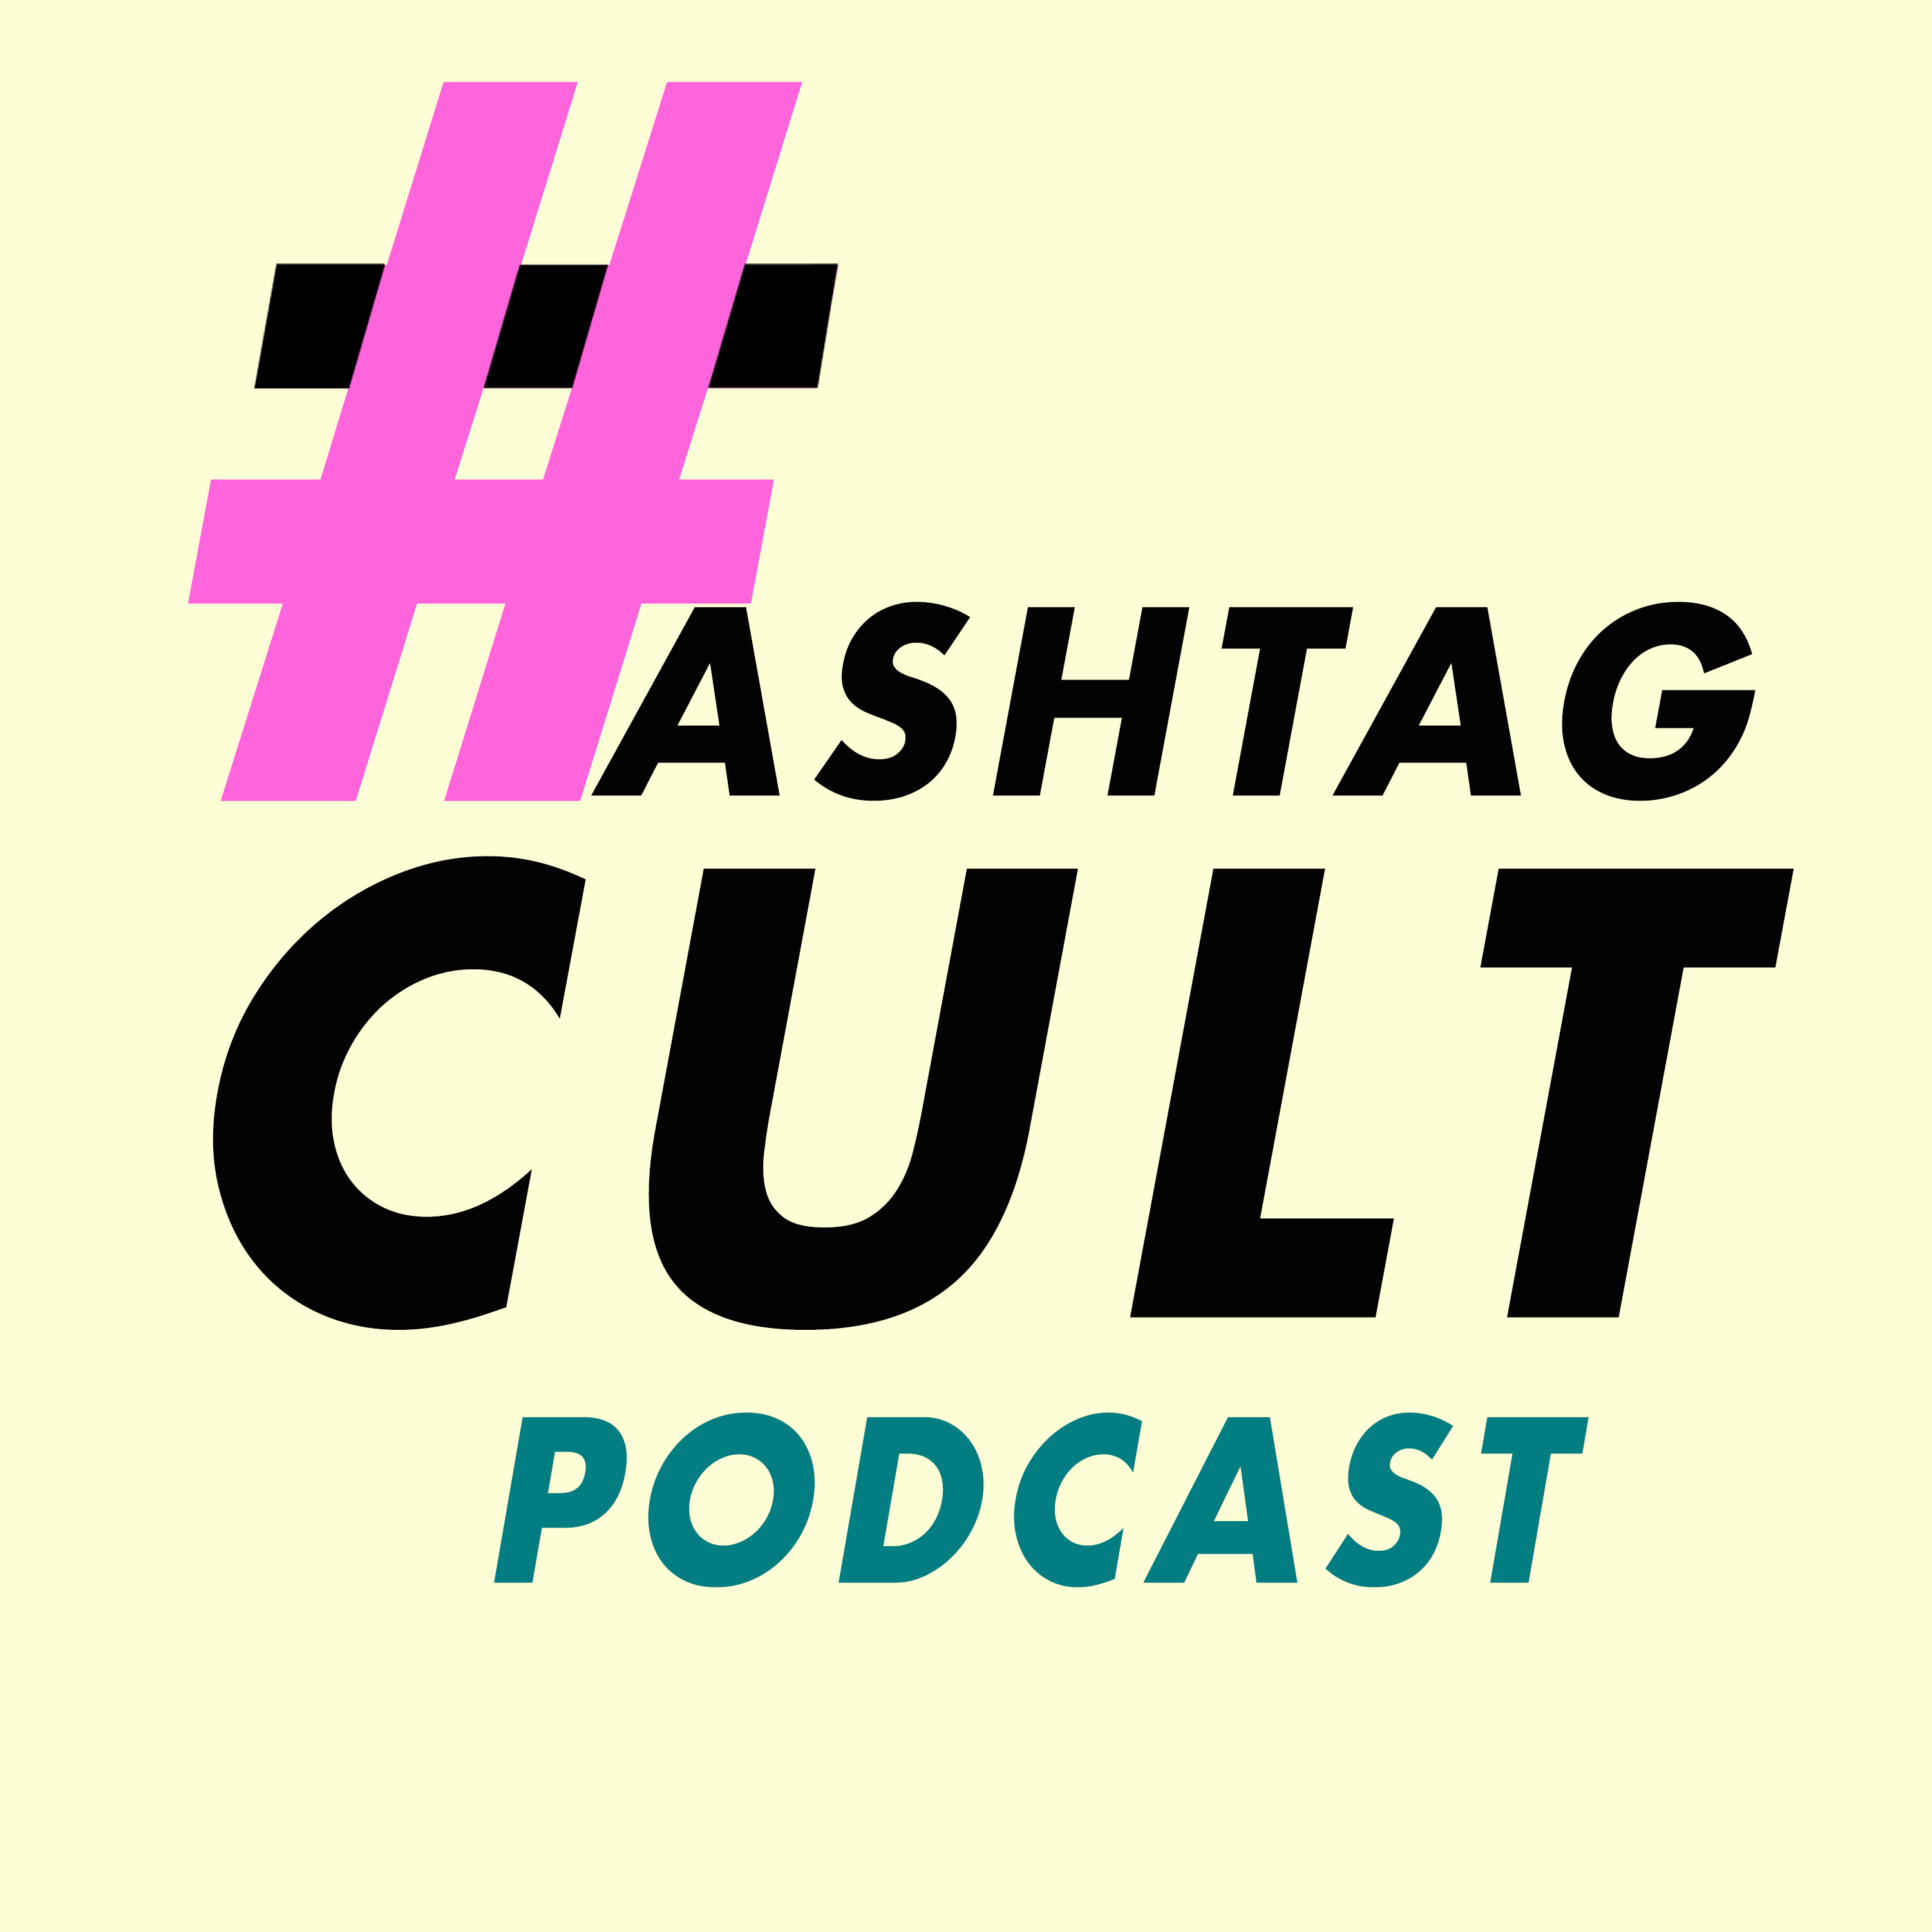 VIDEOS AND PODCAST